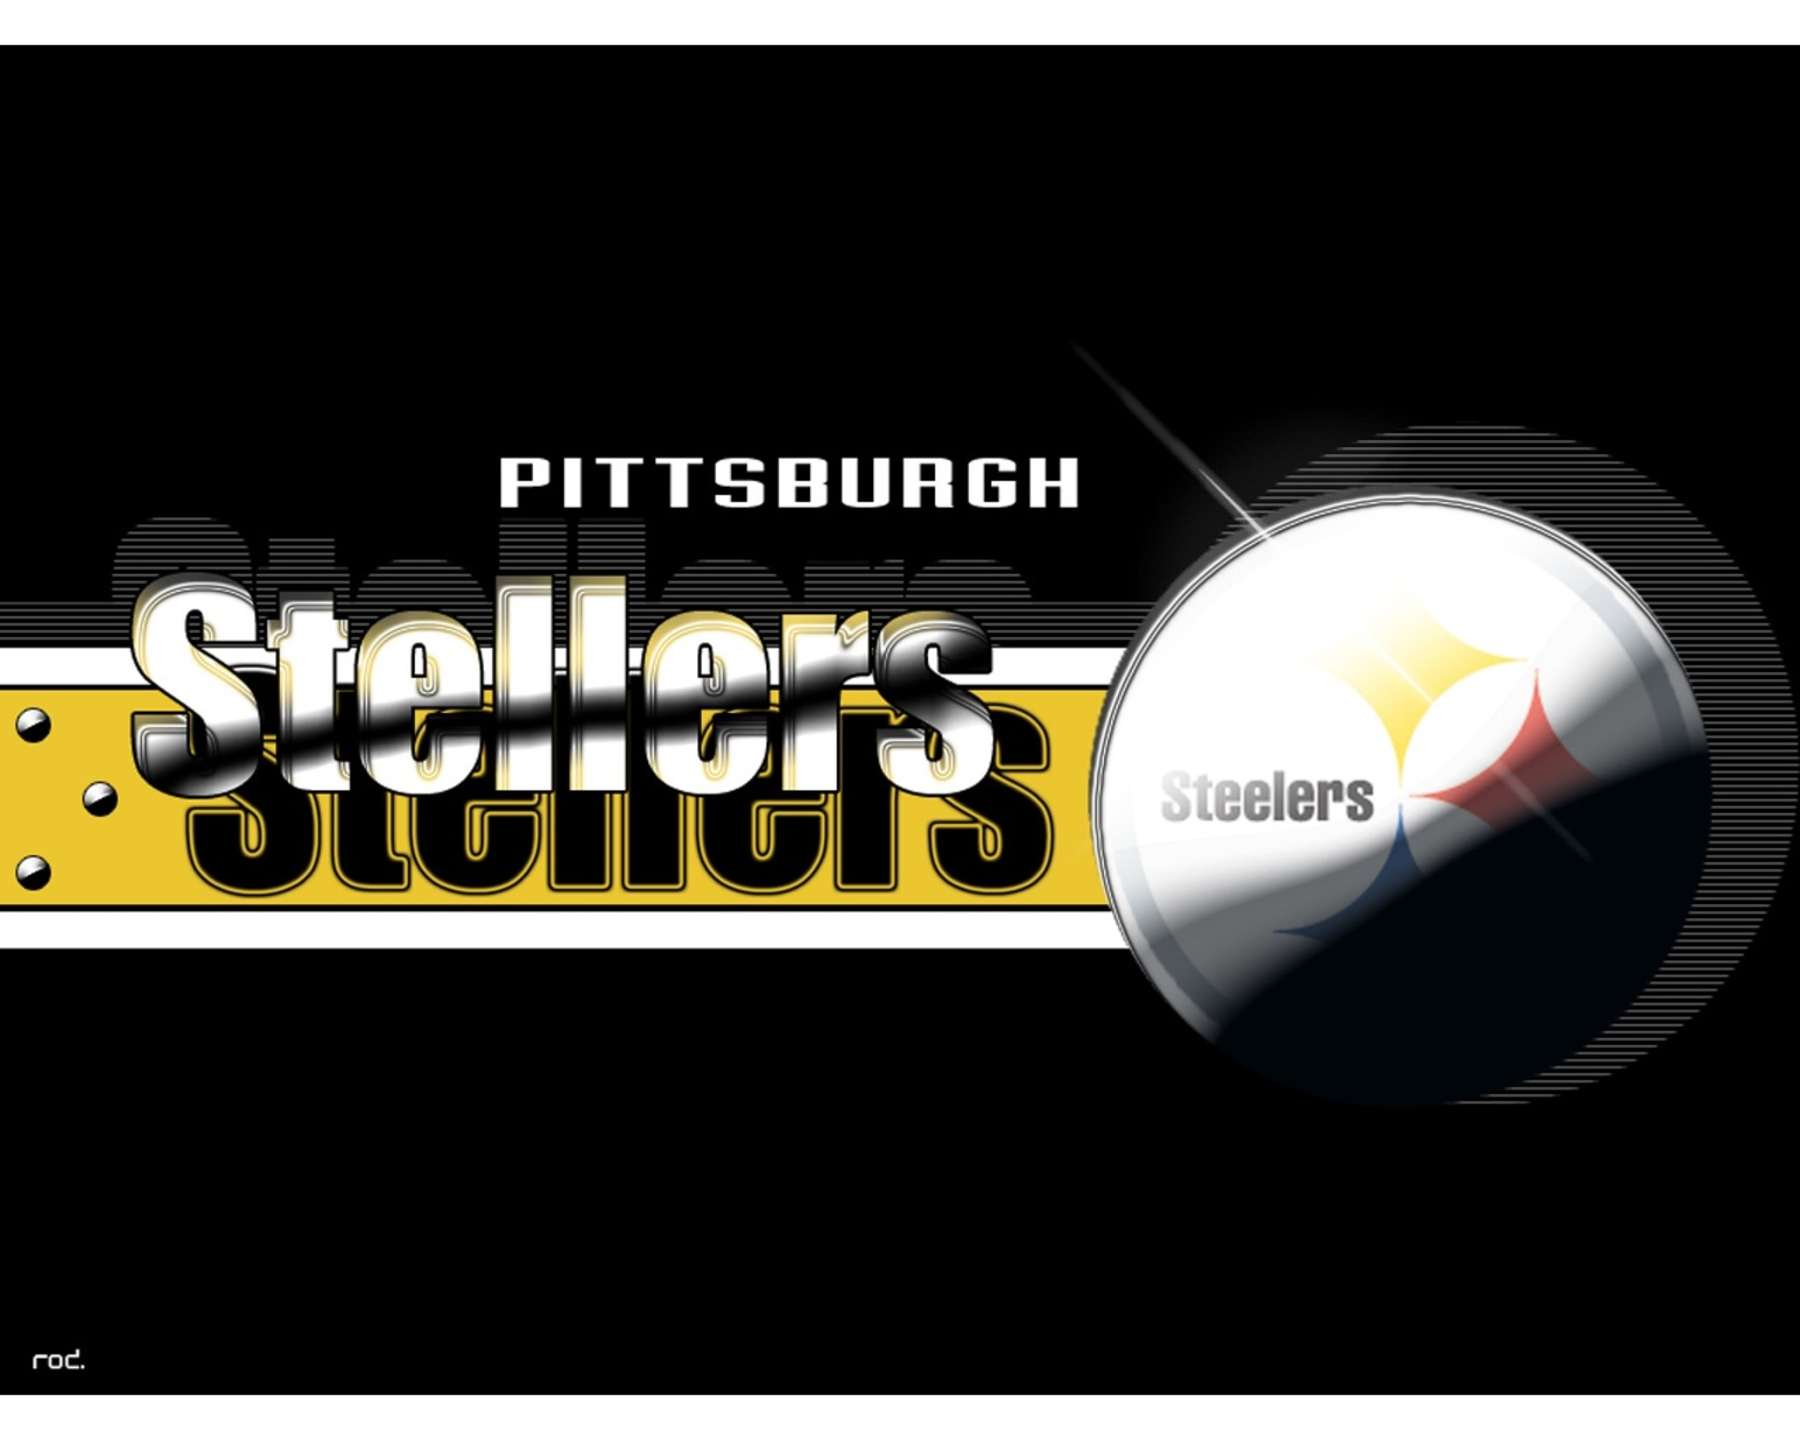 pittsburgh steelers wallpaper for iphone 1800x1440